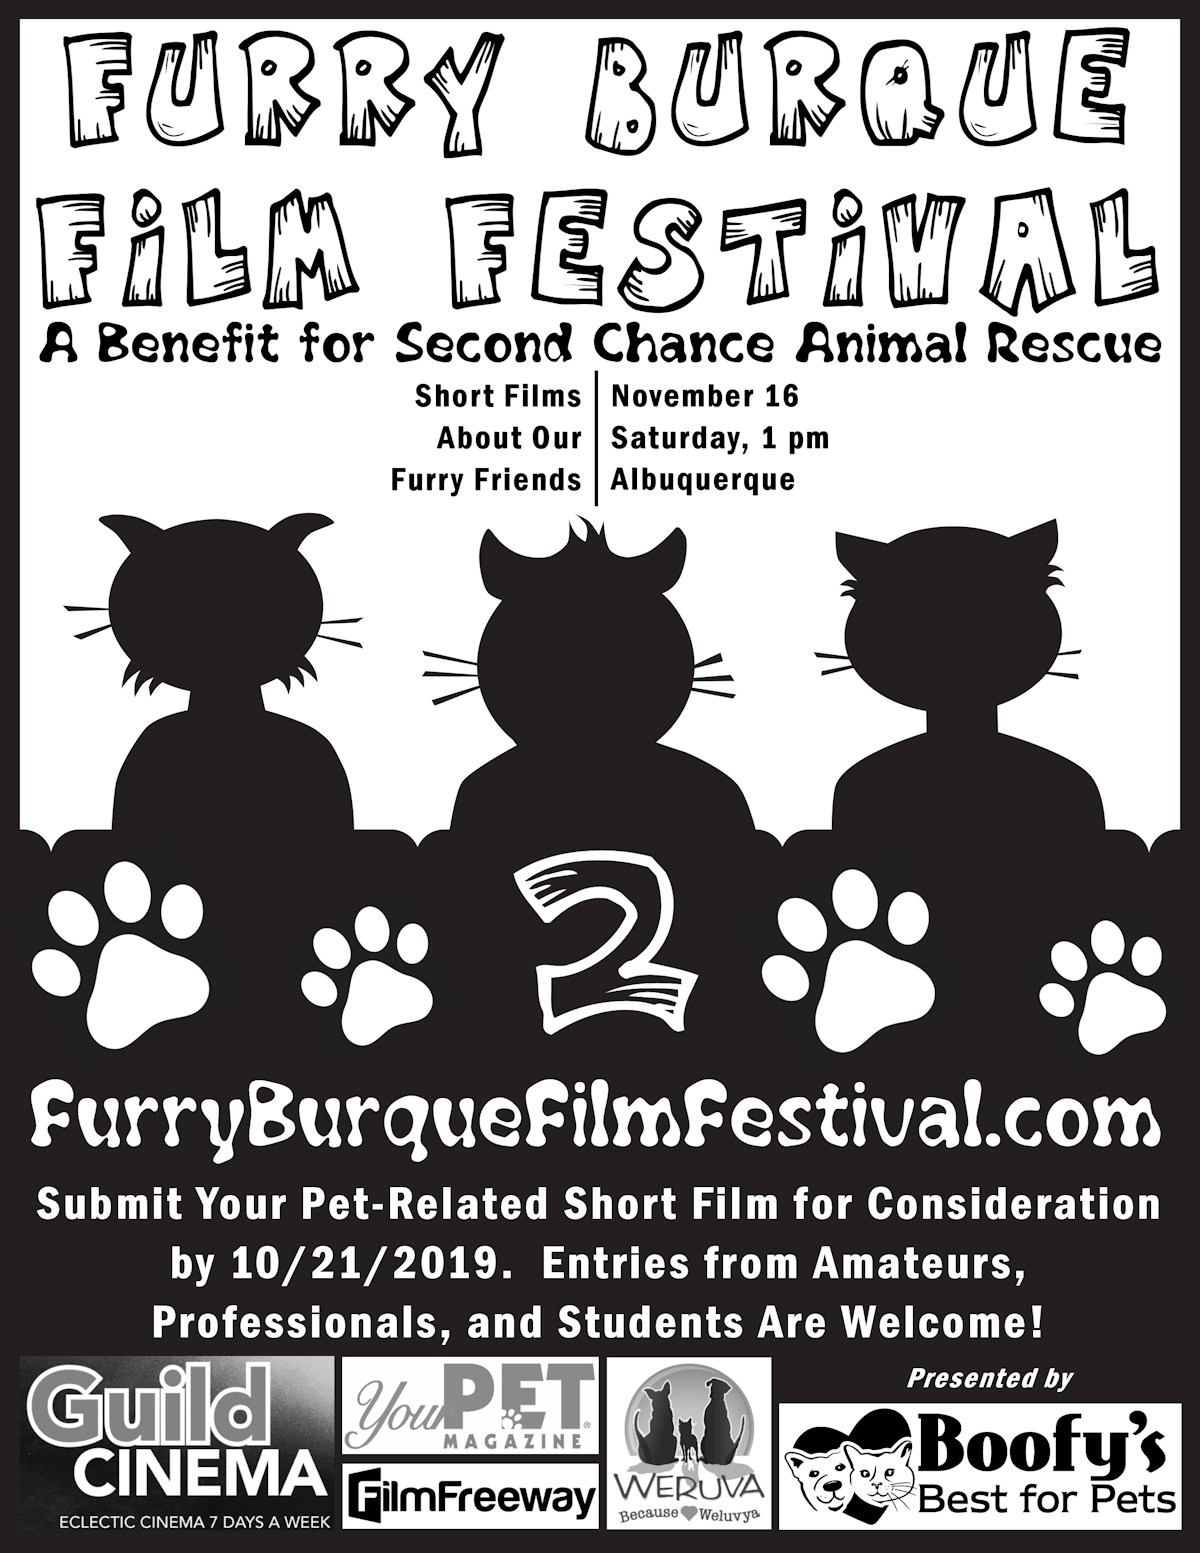 Submit your pet-related short film to the 2nd Annual Furry Burque Film Festival